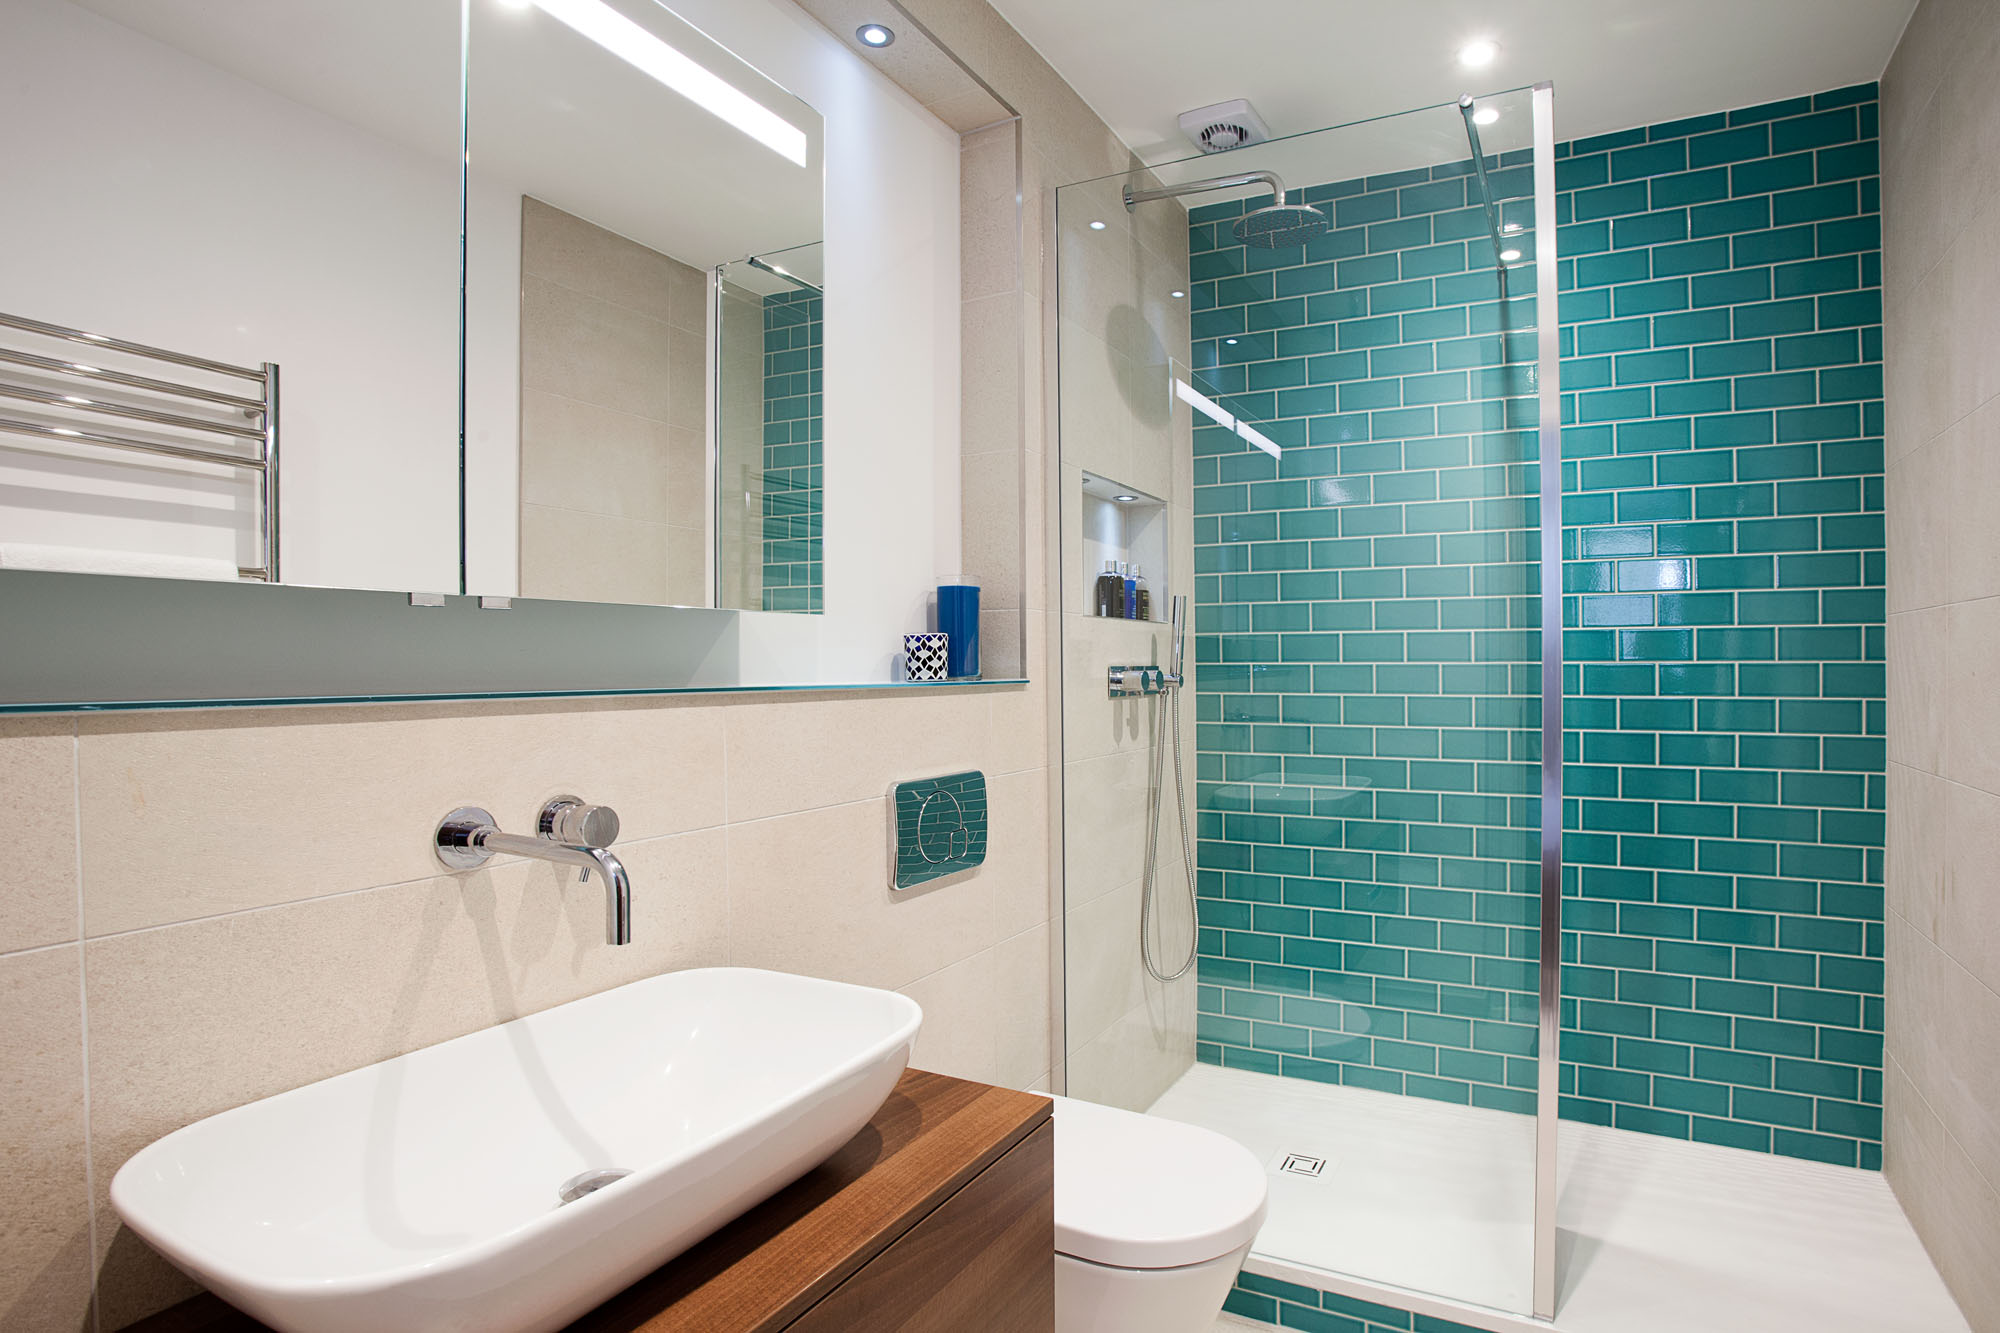 Ensuite Large Shower Featuring Monceau Teal Crackle Tiles